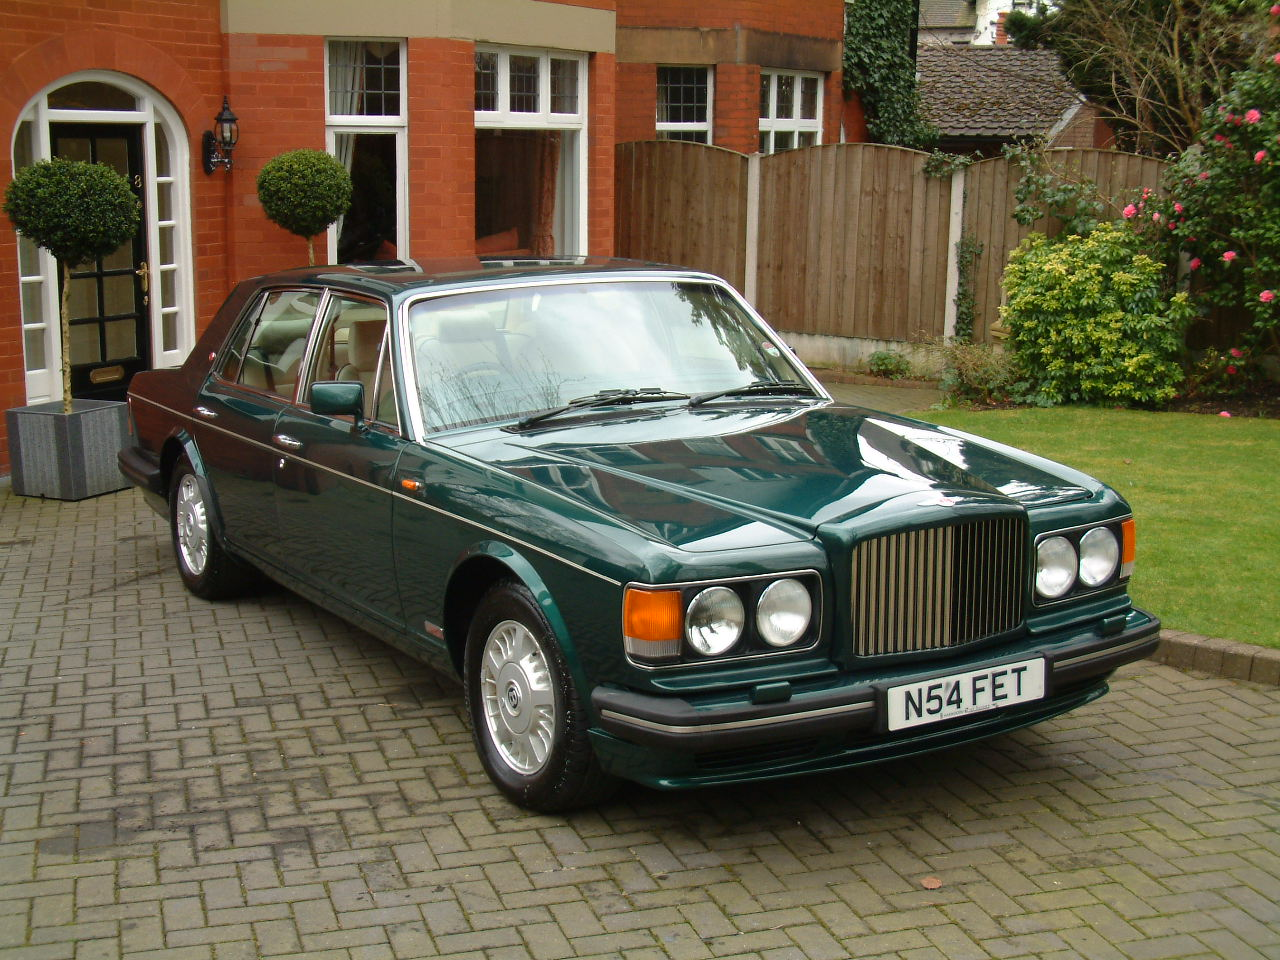 Gt spirit models to introduce 1995 bentley turbo r by july preorders open xdiecast